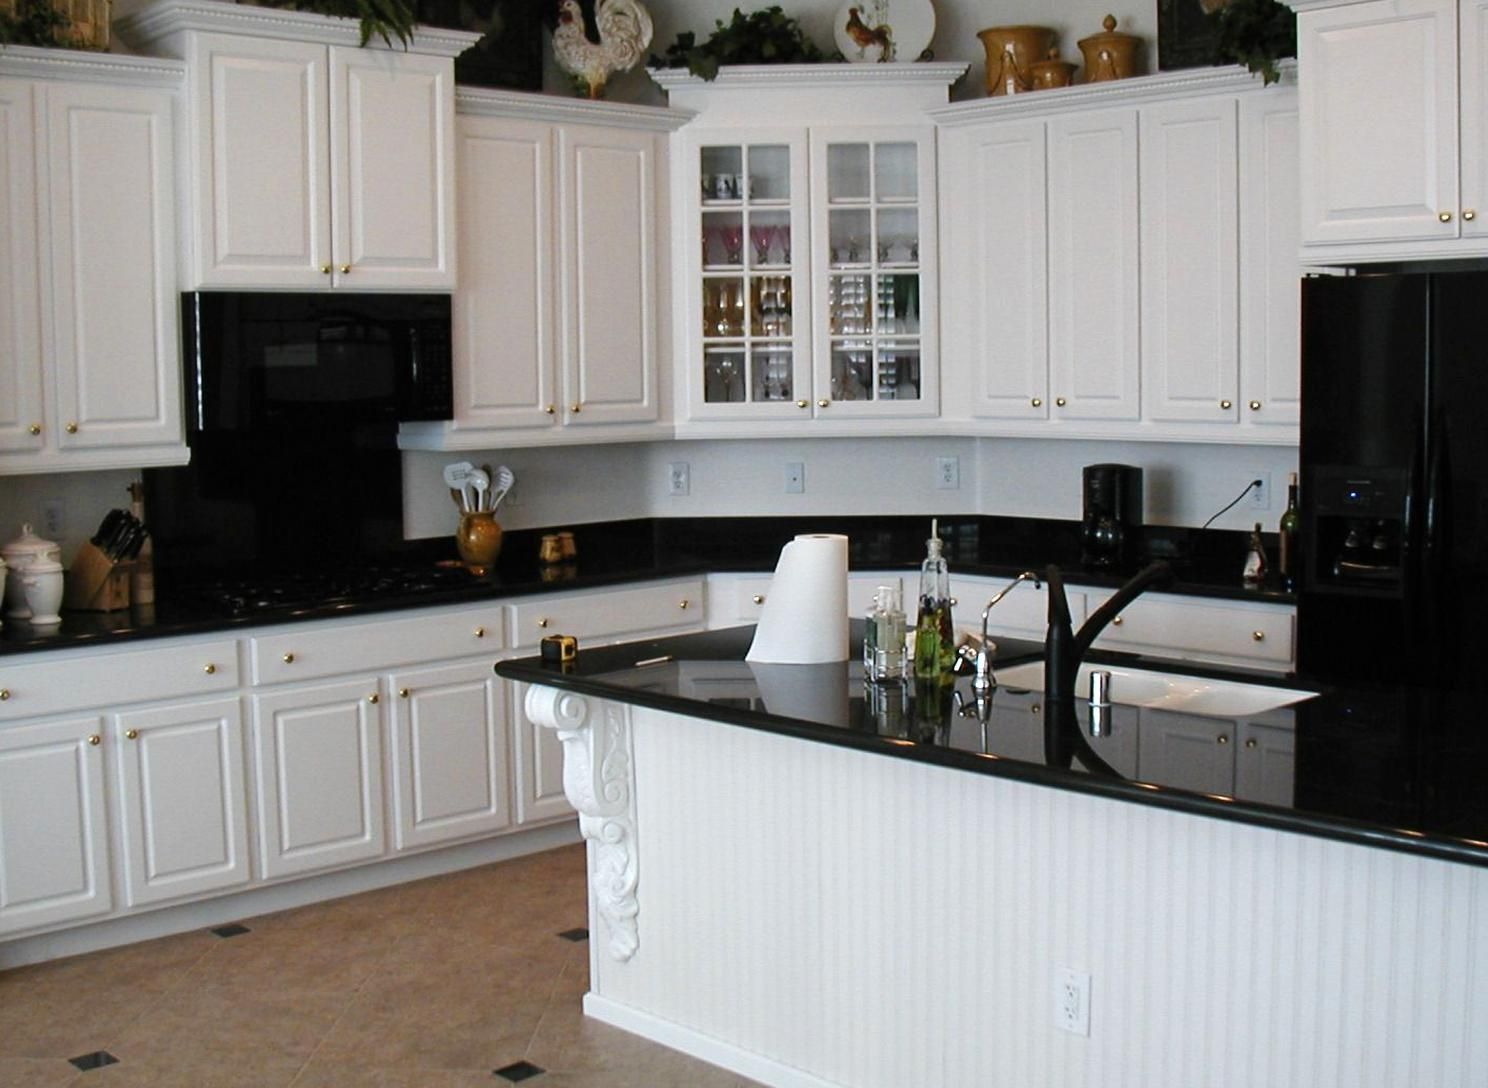 White Kitchen Cab With Black Countertop Decorate Ideas In Replac In 2020 Antique White Kitchen Cabinets Kitchen Cabinets With Black Appliances Black Appliances Kitchen